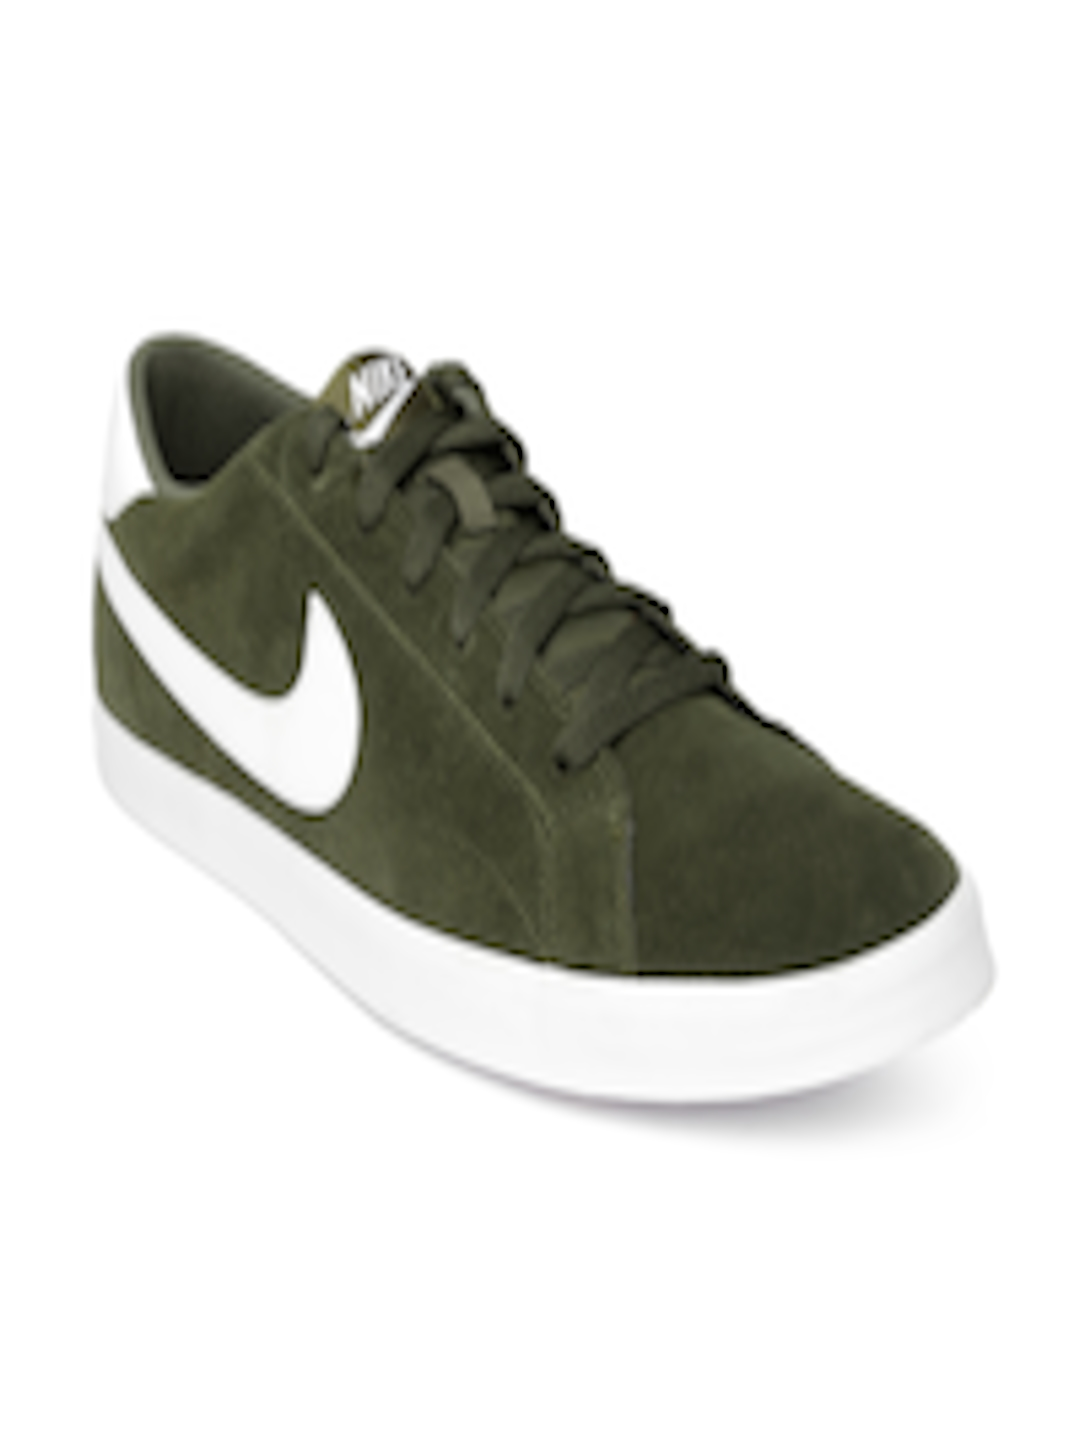 Buy Nike Men Olive Green Eastham Suede Sneakers - Casual Shoes for Men  1003502  3620d63e5